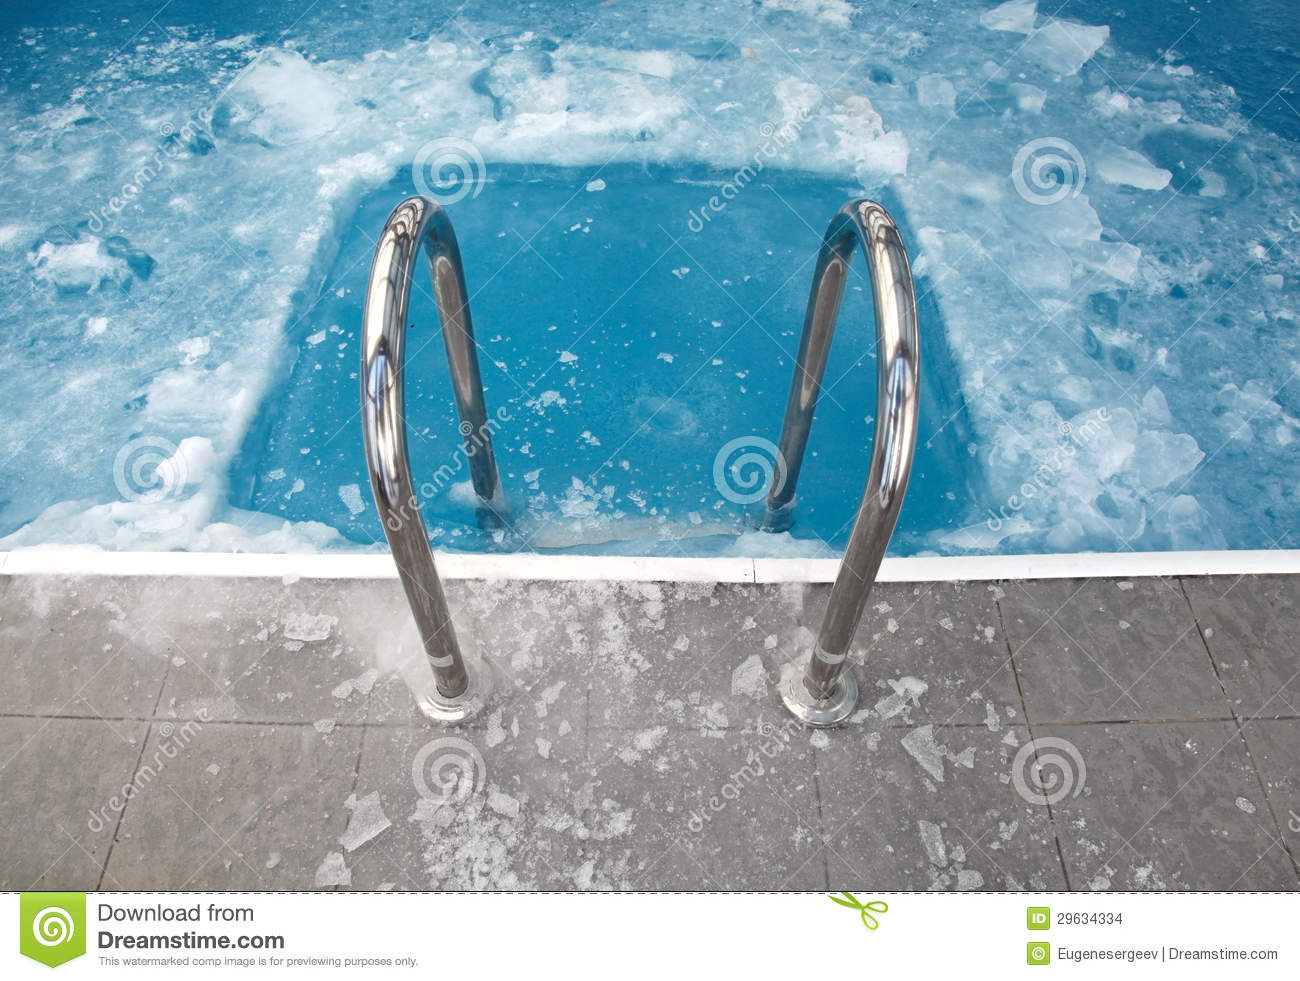 steps in the frozen blue swimming pool stock images image 29634334. Black Bedroom Furniture Sets. Home Design Ideas